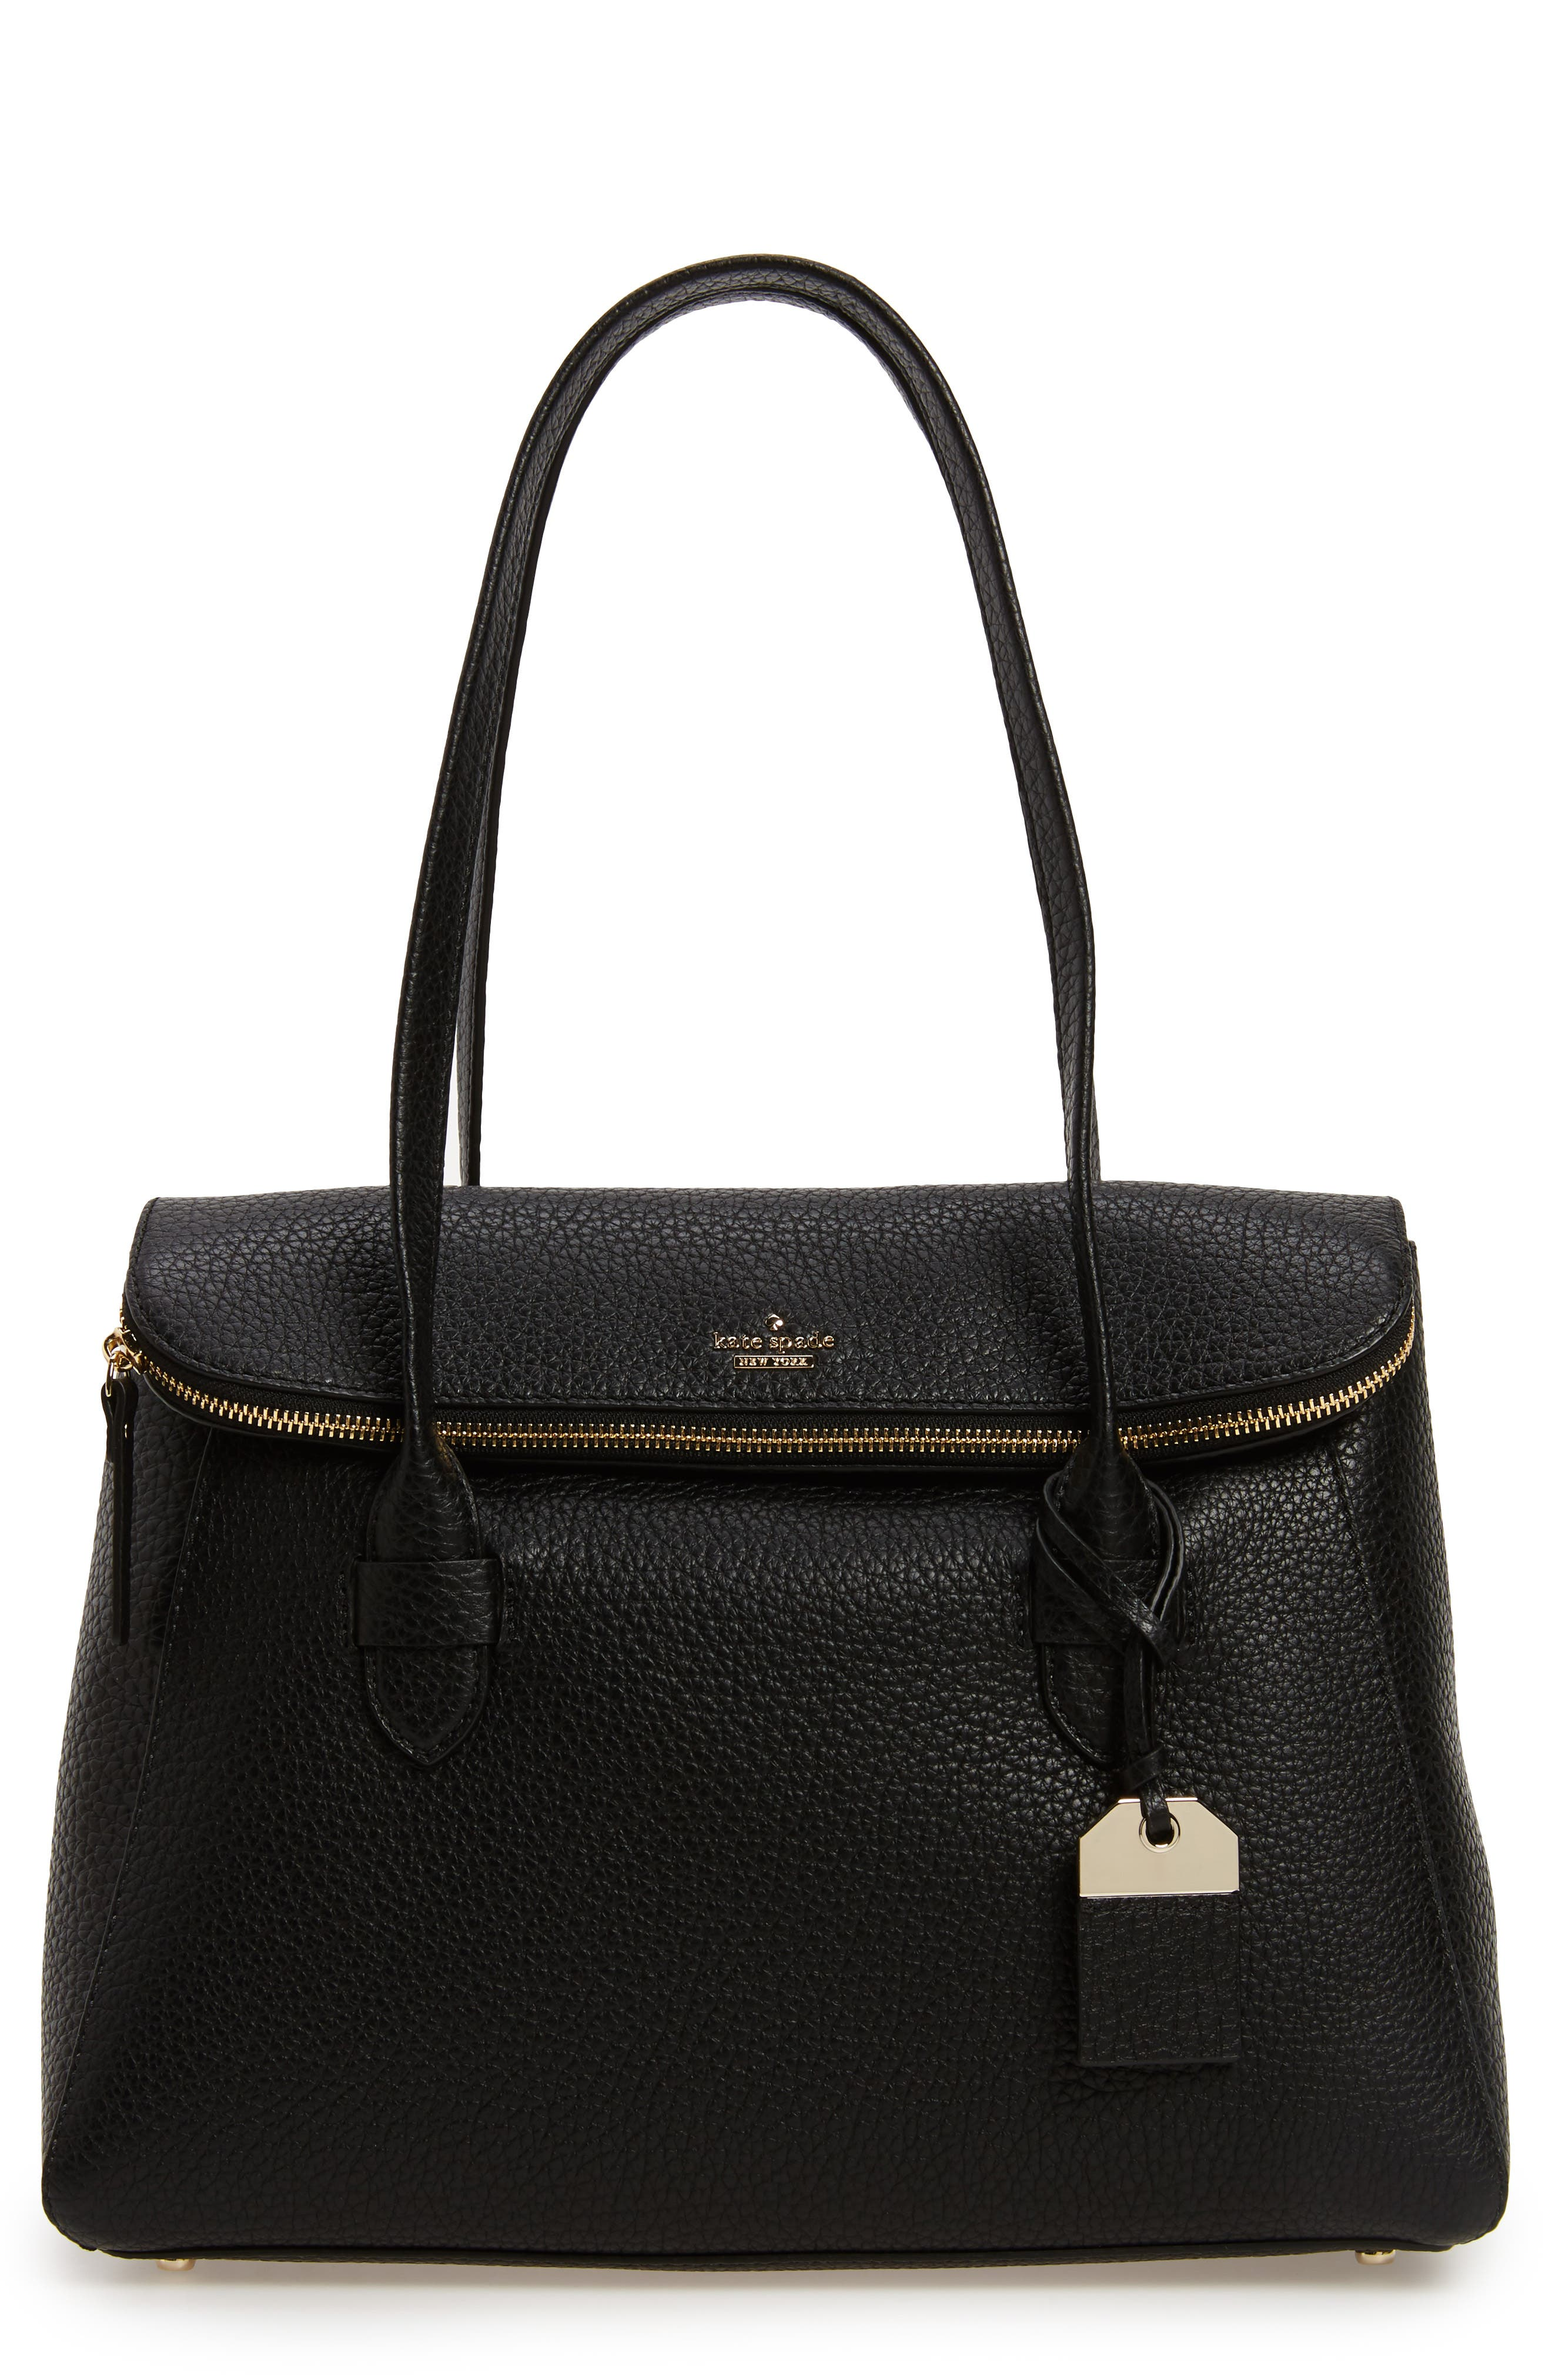 carter street - laurelle leather tote,                             Main thumbnail 1, color,                             001